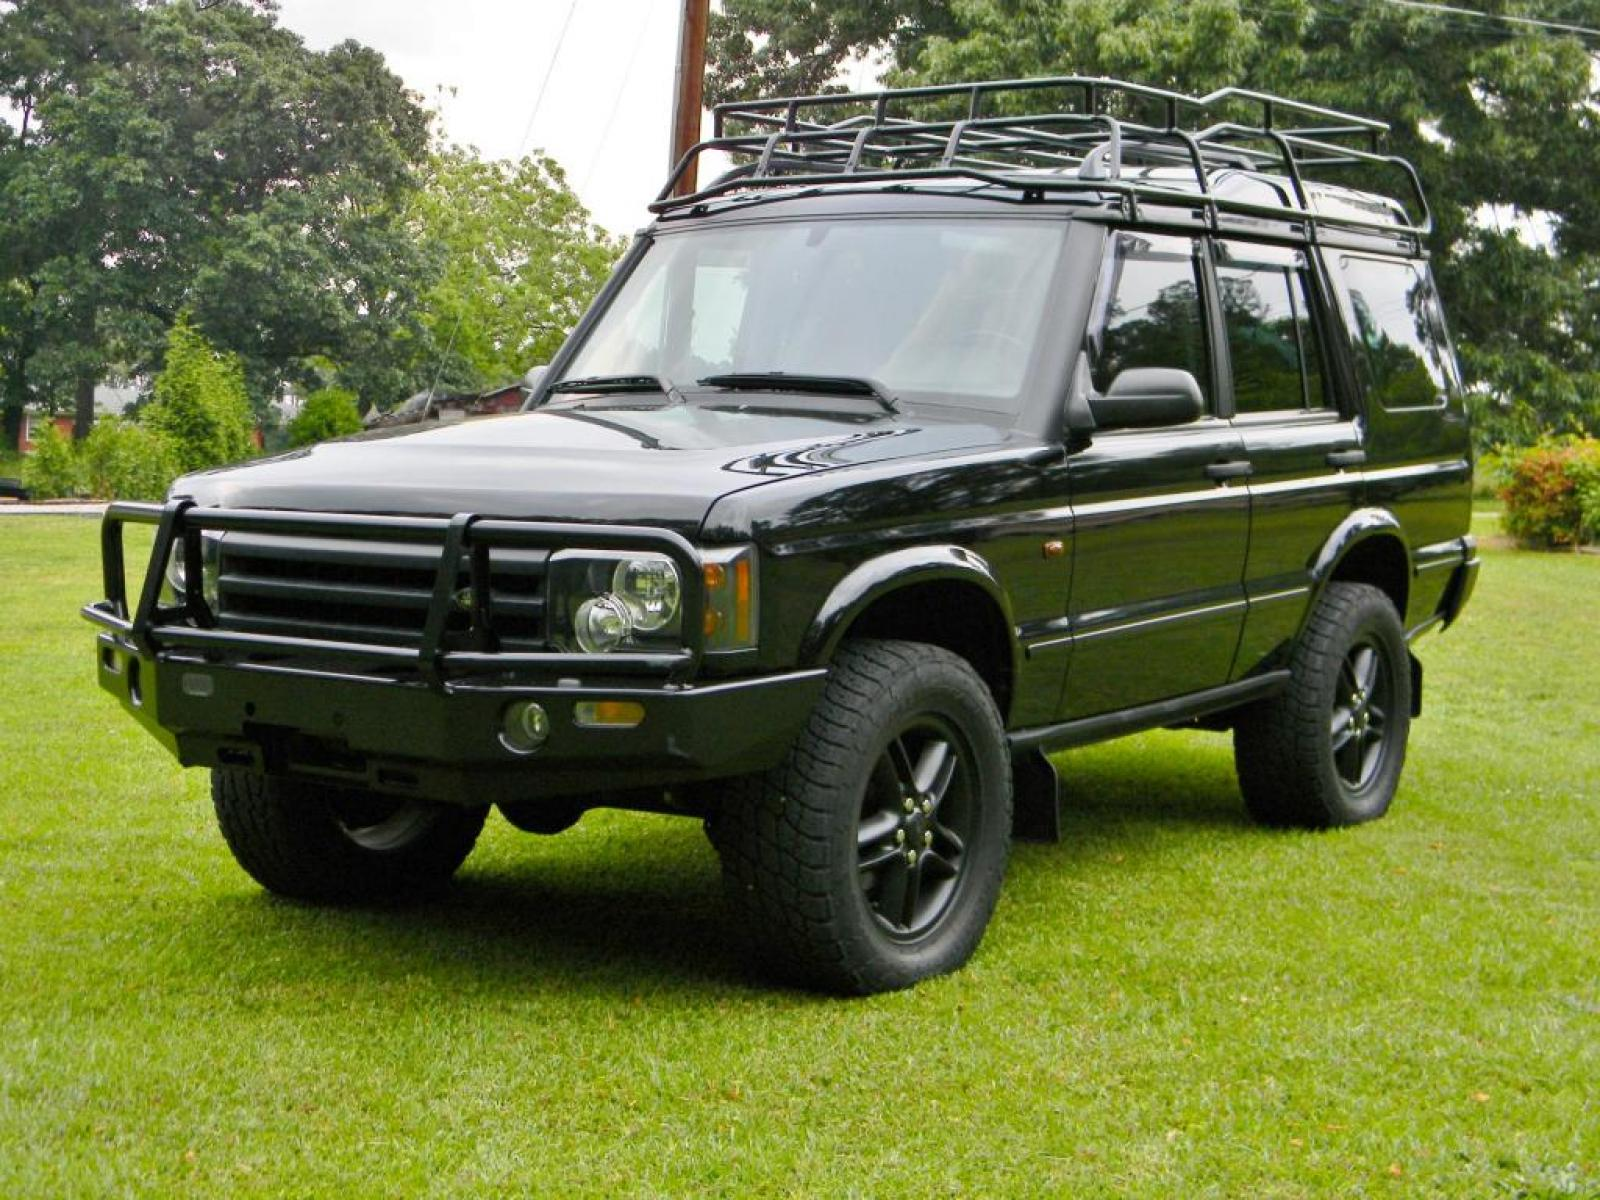 2003 Land Rover Discovery Information and photos ZombieDrive